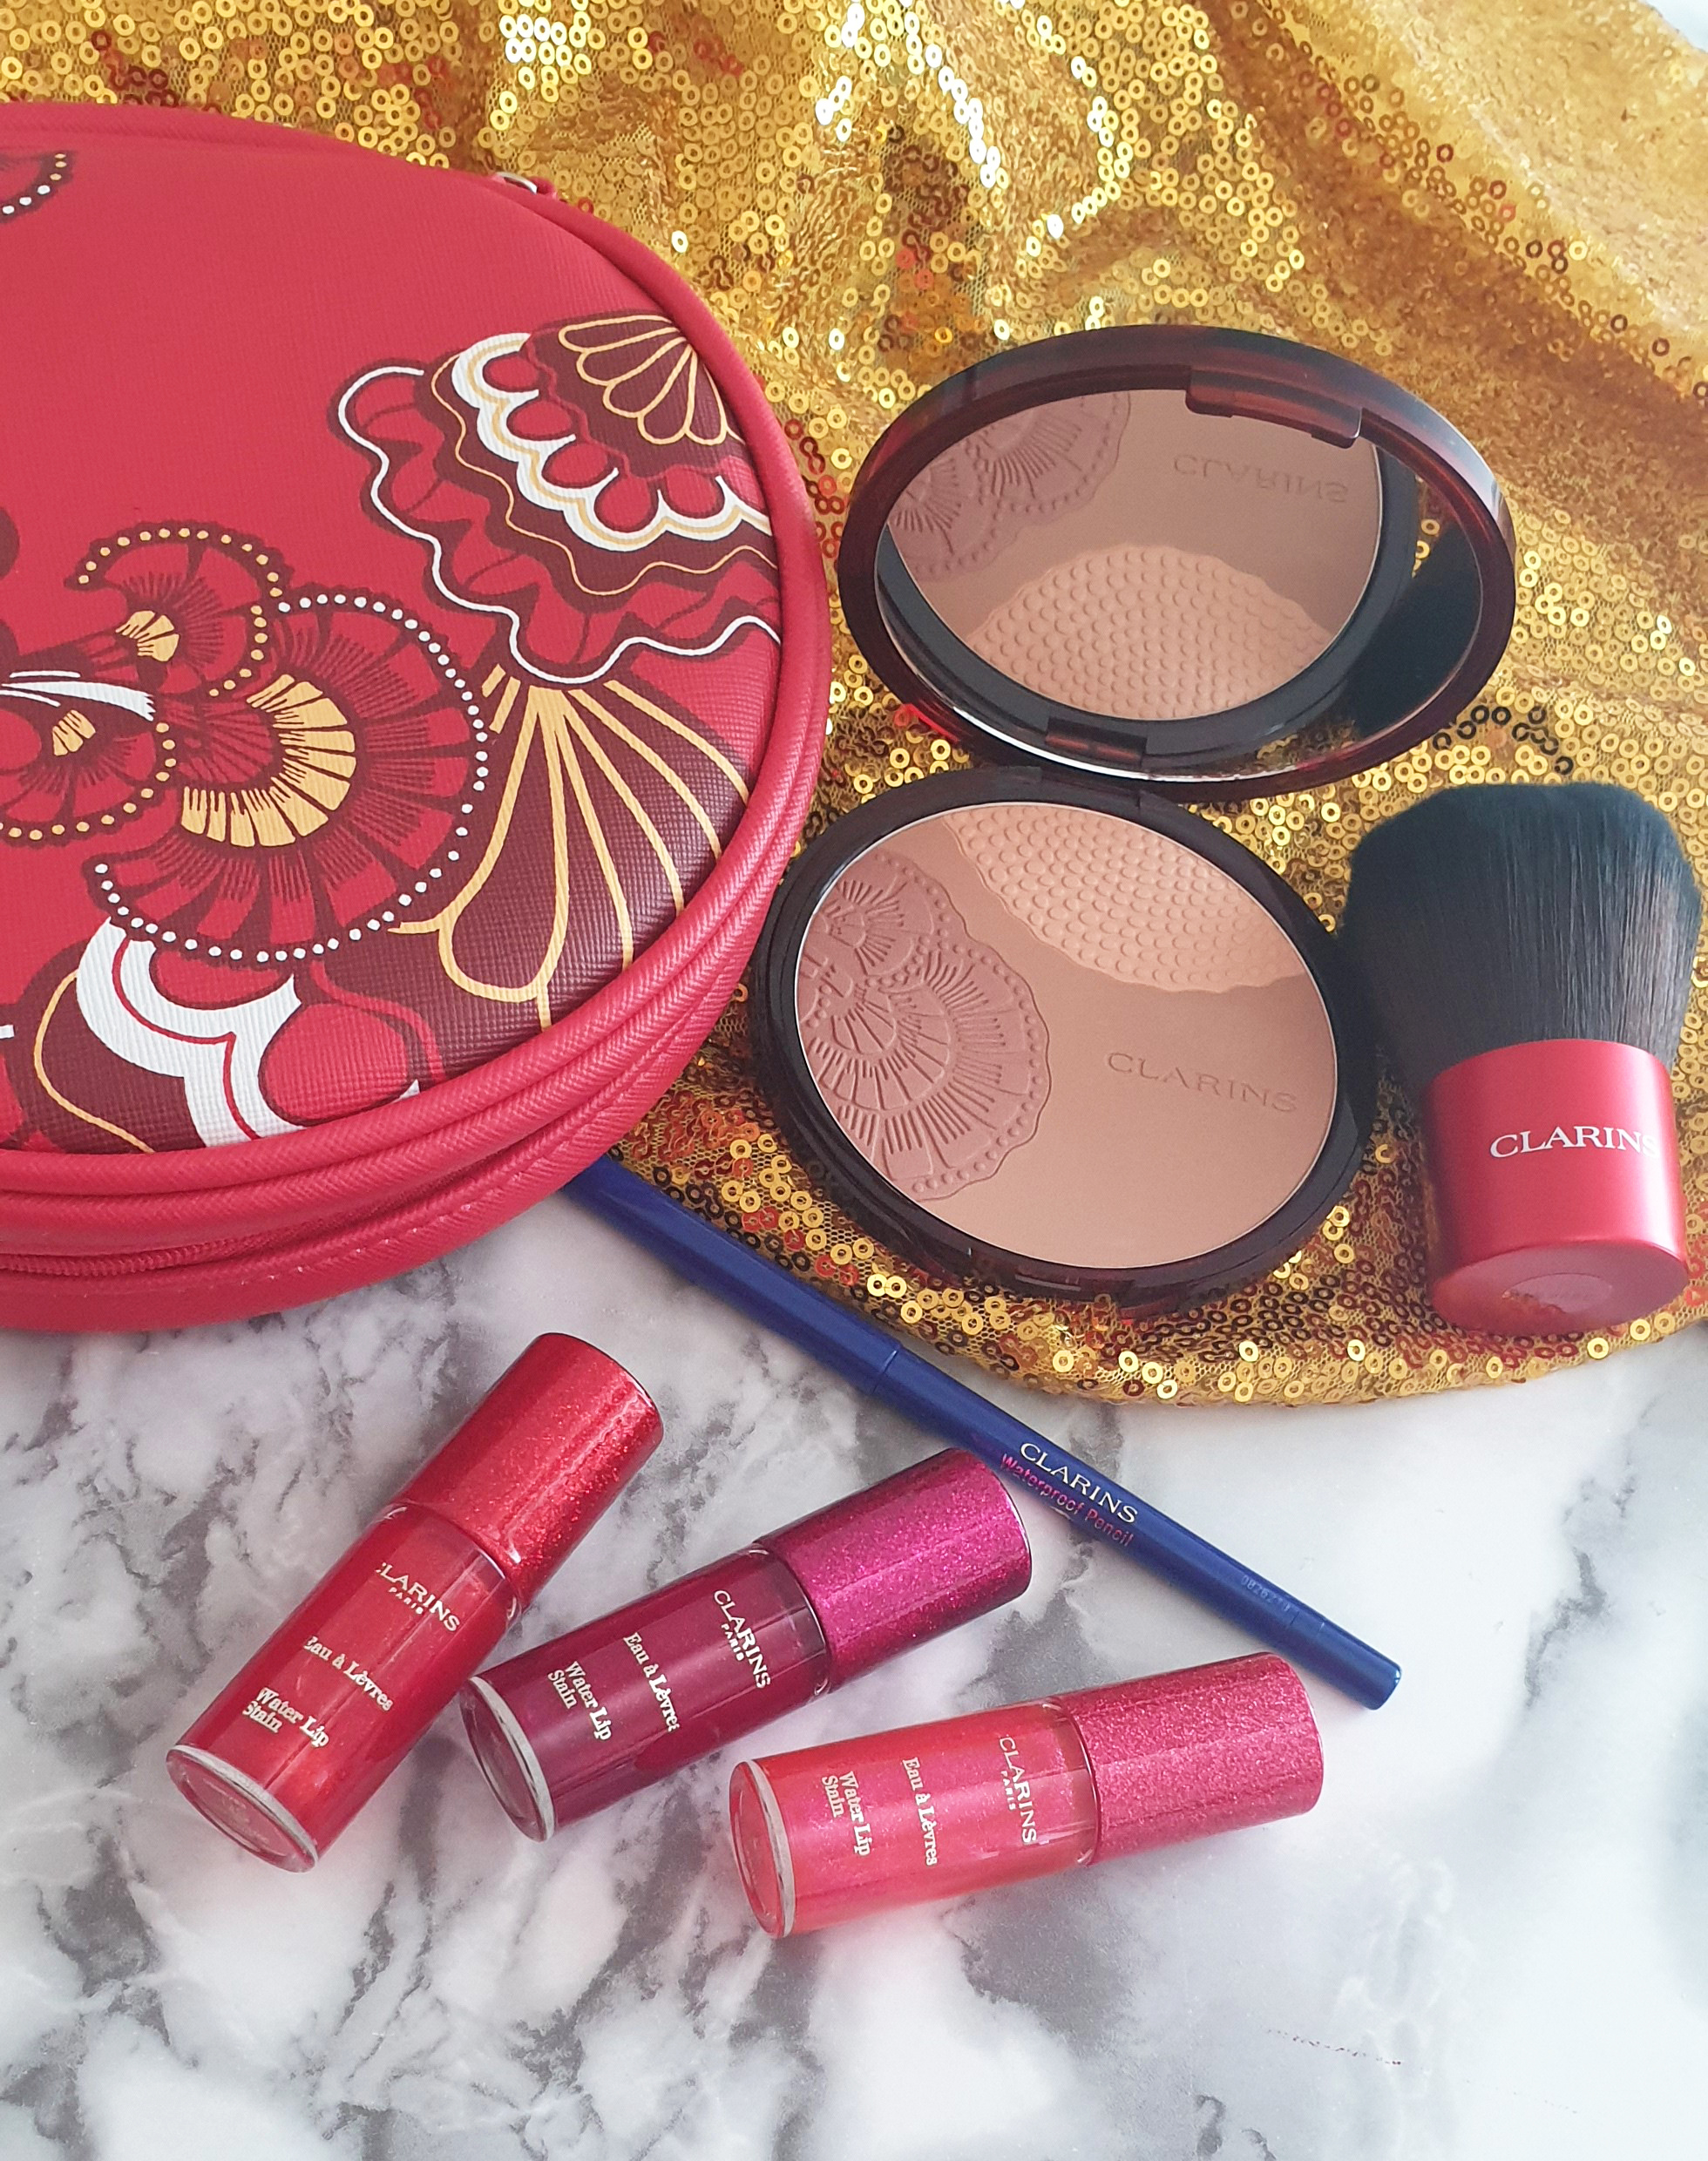 Sunkissed Clarins: collezione makeup estate 2019